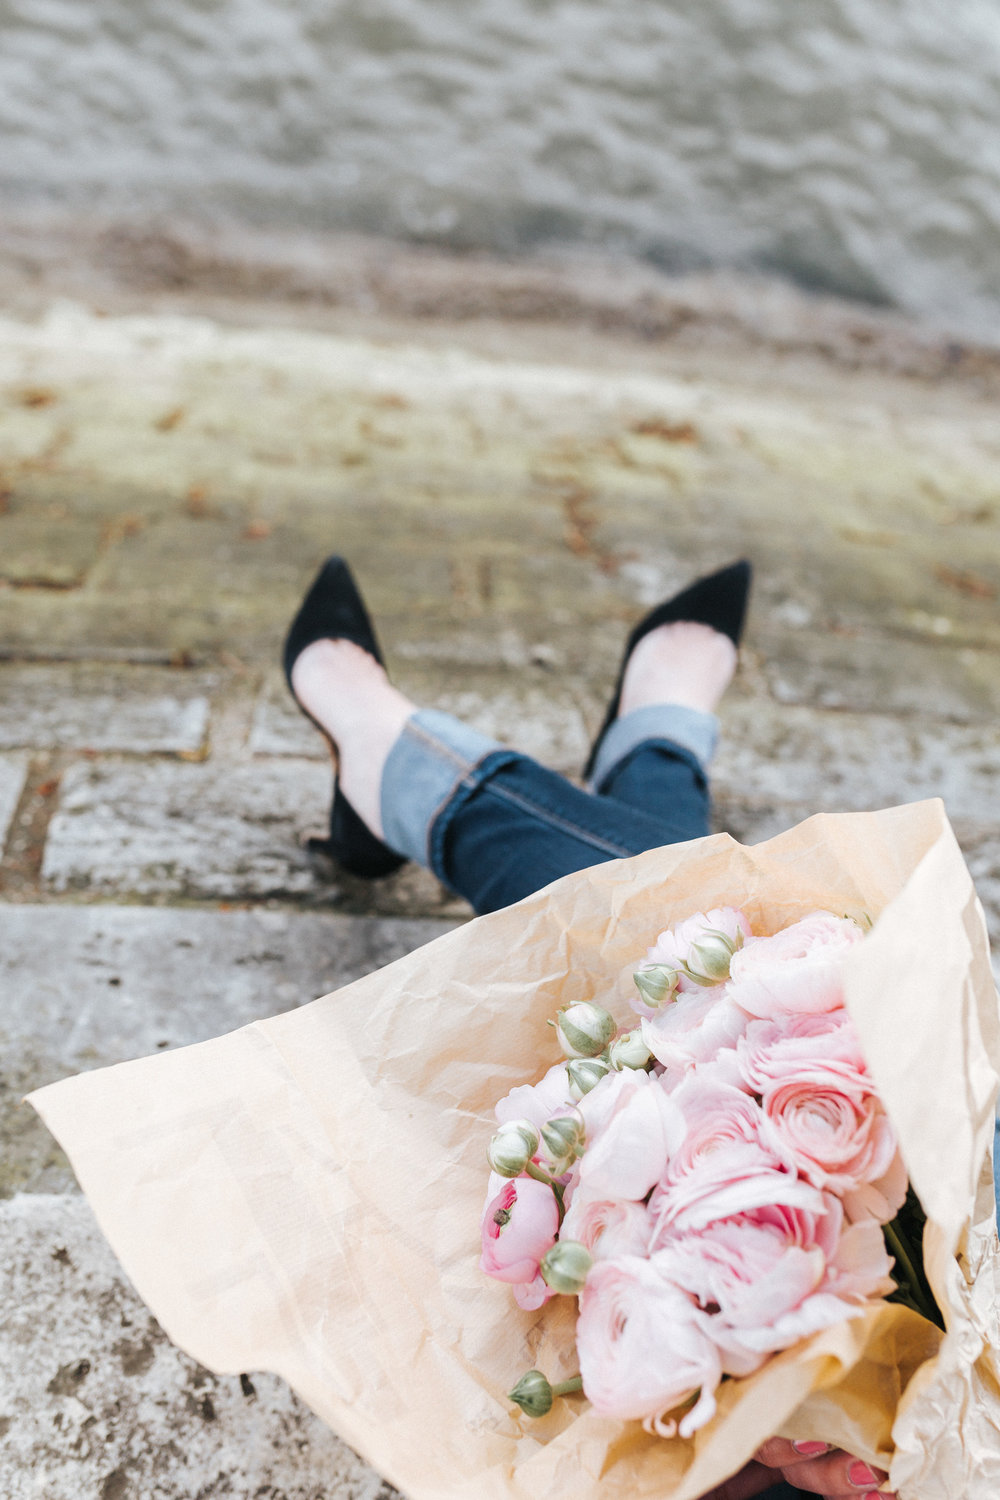 Details classic high heal shoes by the Seine river with bouquet of ranunculus captured by Paris Photographer Federico and Anastasia Guendel IheartParisFr TheFlyingPoodle